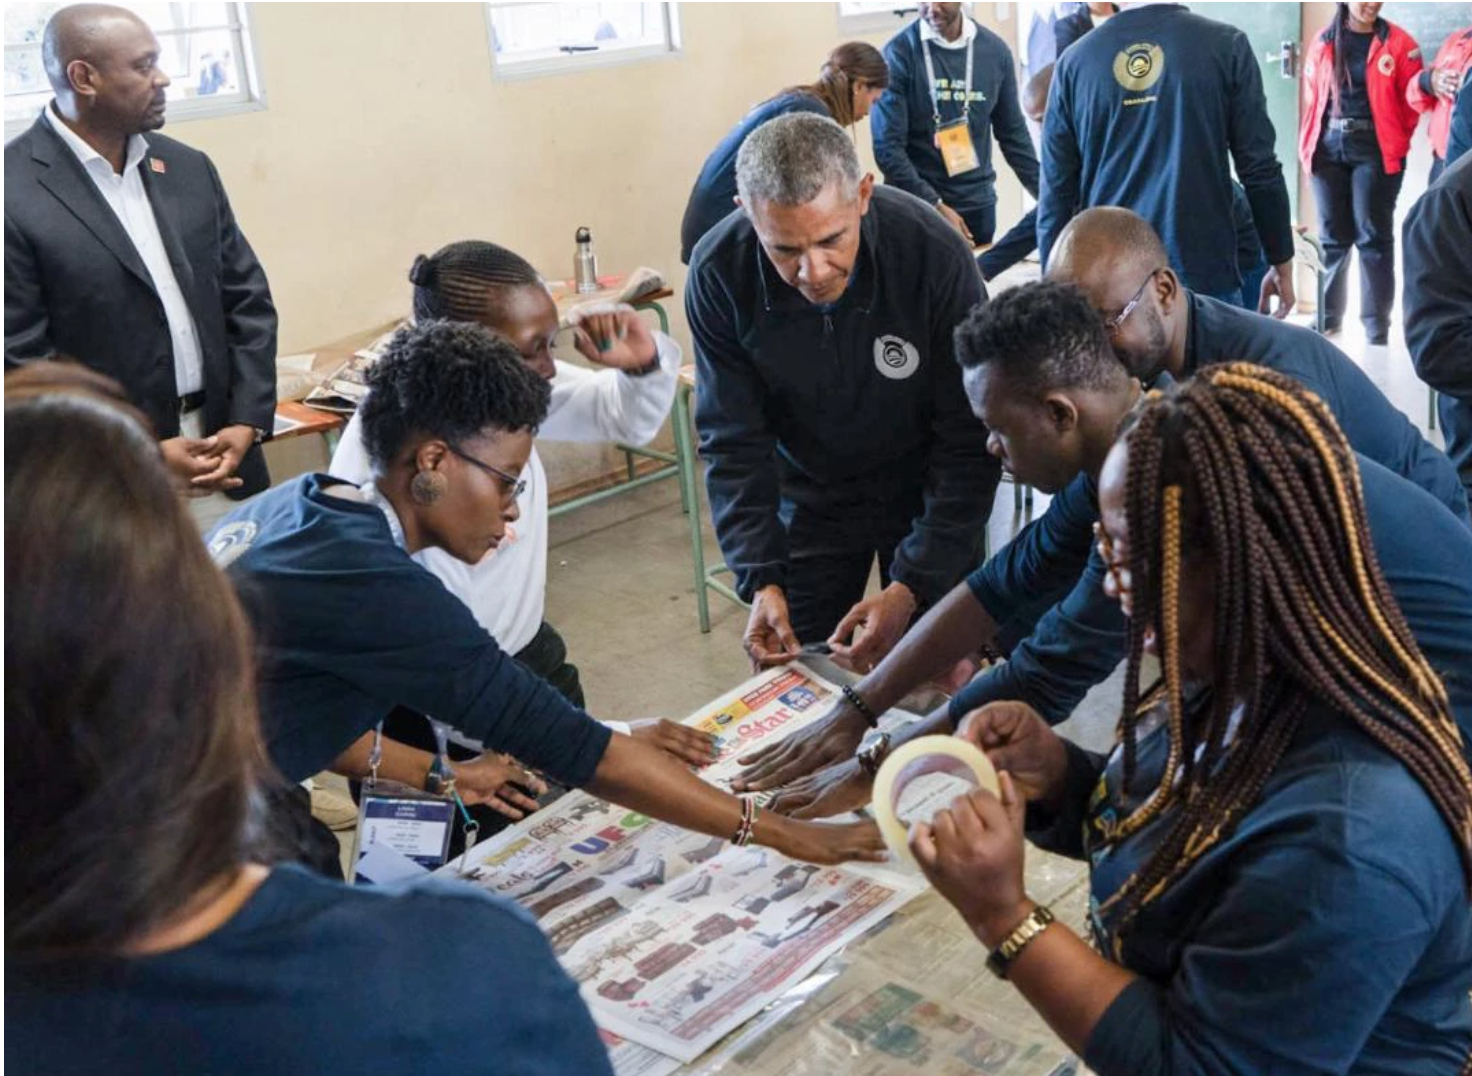 Francisca (bottom right) makes sleeping mats for the homeless with former President Barack Obama during a five-day leadership program in Johannesburg, South Africa.